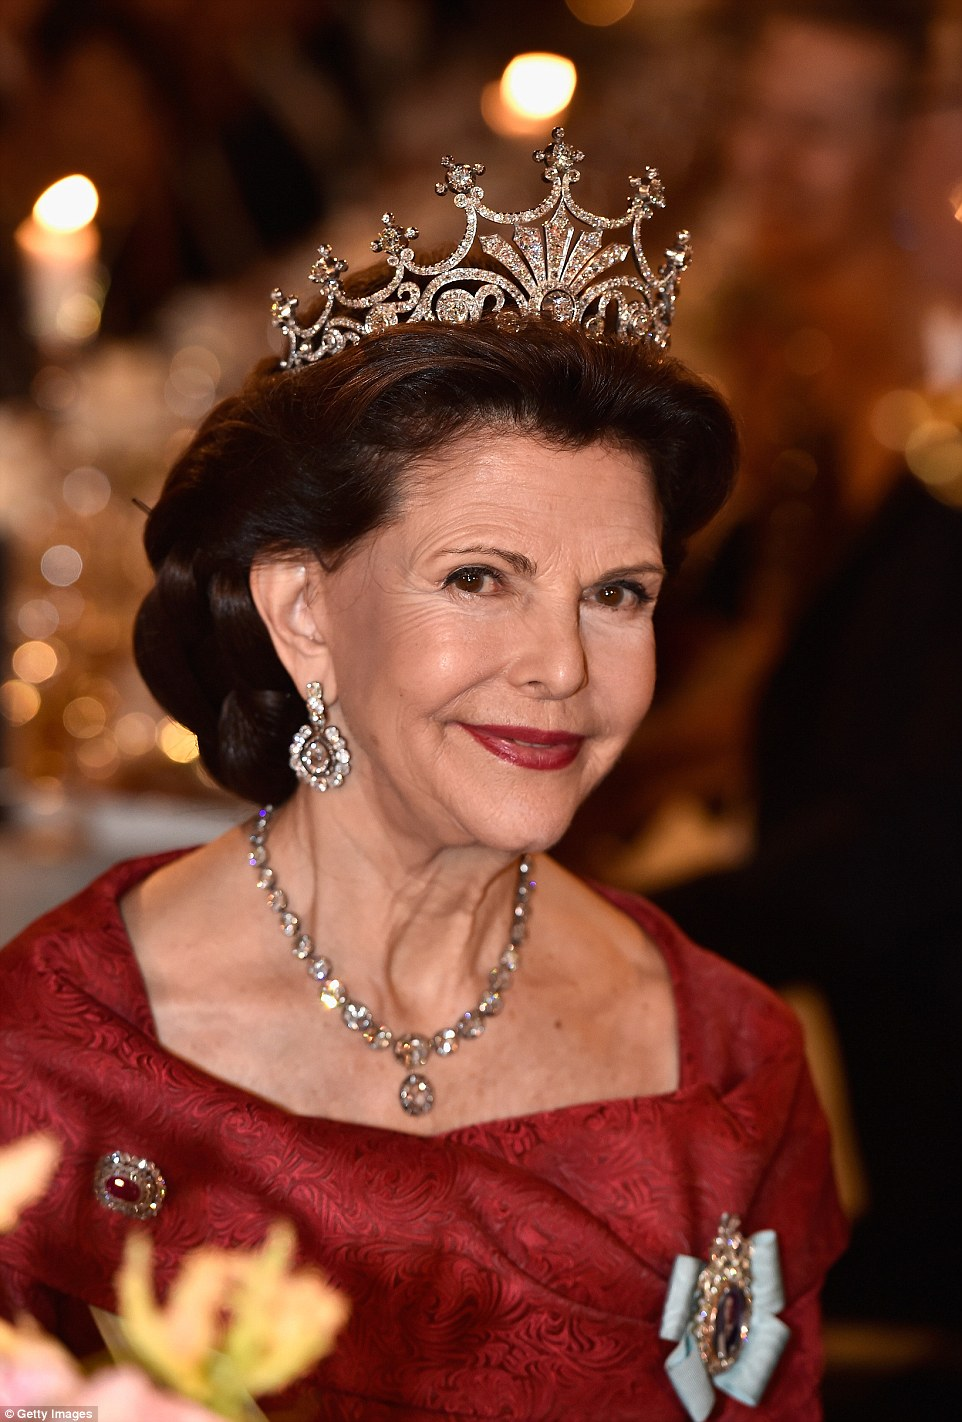 Queen Silvia wore the particularly regalNine Prong Tiara with a diamond necklace and drop earrings. It is often regarded as her favourite tiara and is encrusted with 500 diamonds and has a sunburst motif that culminates in nine prongs